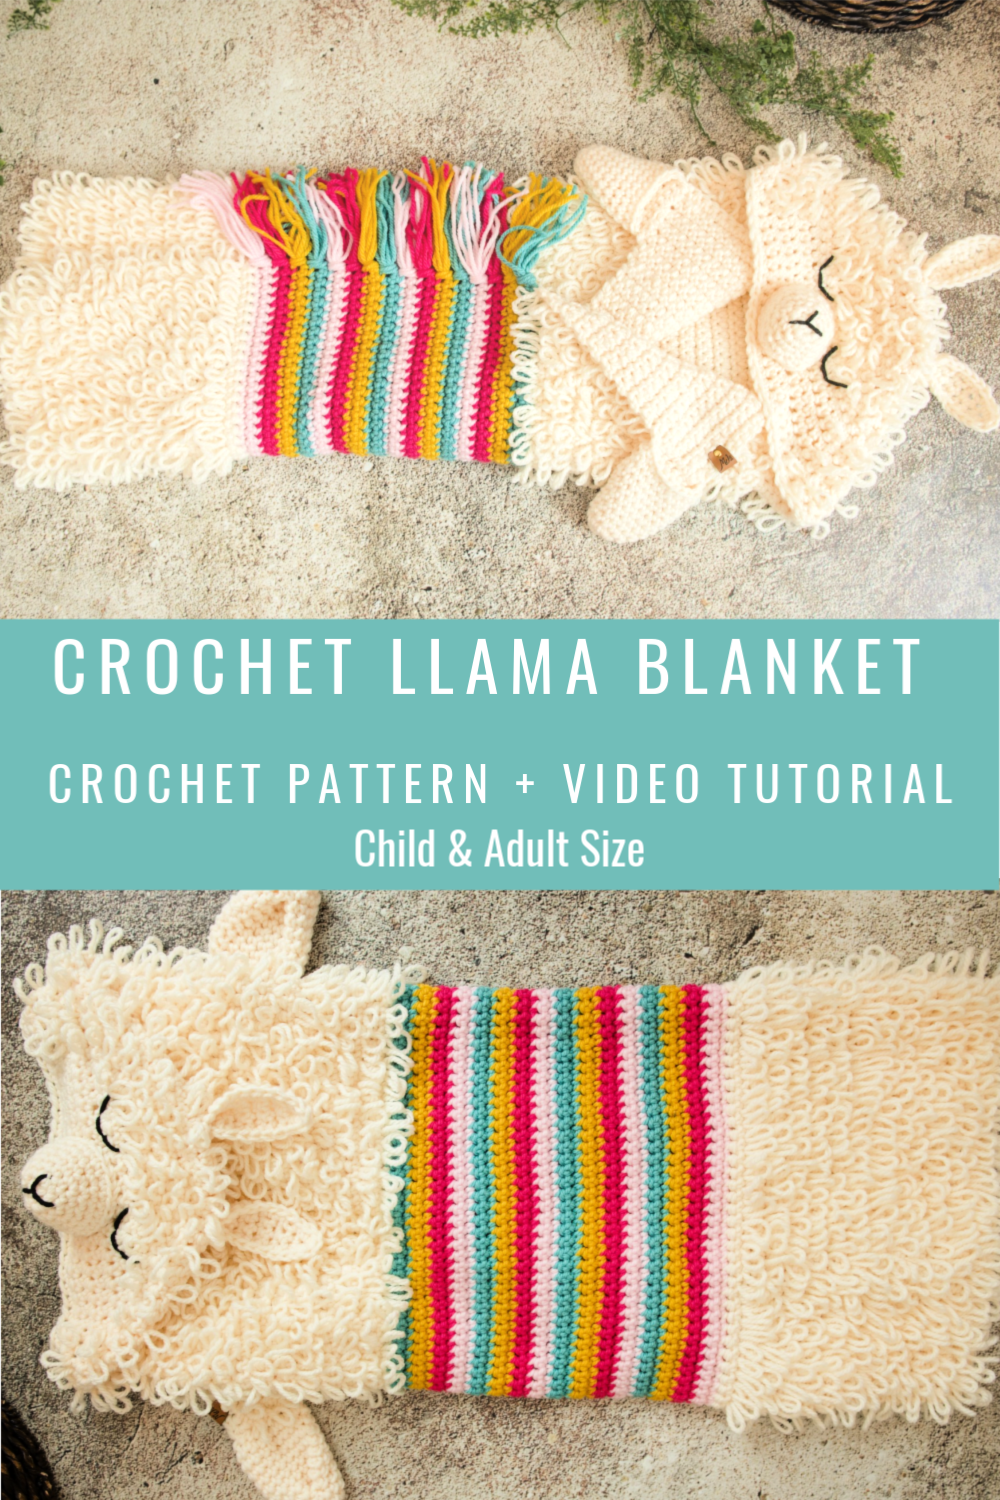 Alpaca My Llama Blanket Crochet Pattern Mj S Off The Hook Designs In 2020 Crochet Blanket Patterns Crochet Blanket Designs Crochet Patterns